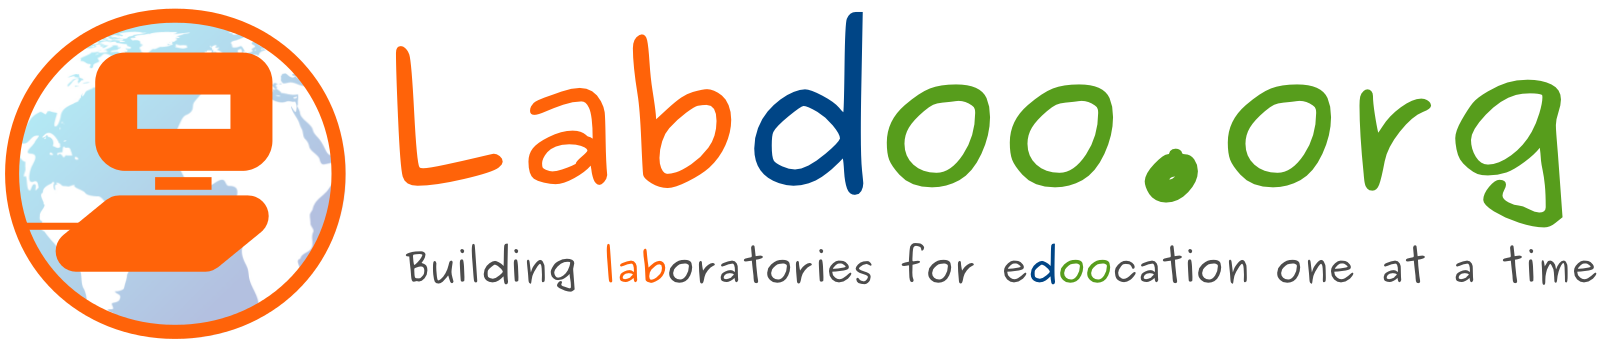 labdoo logo laptop orange